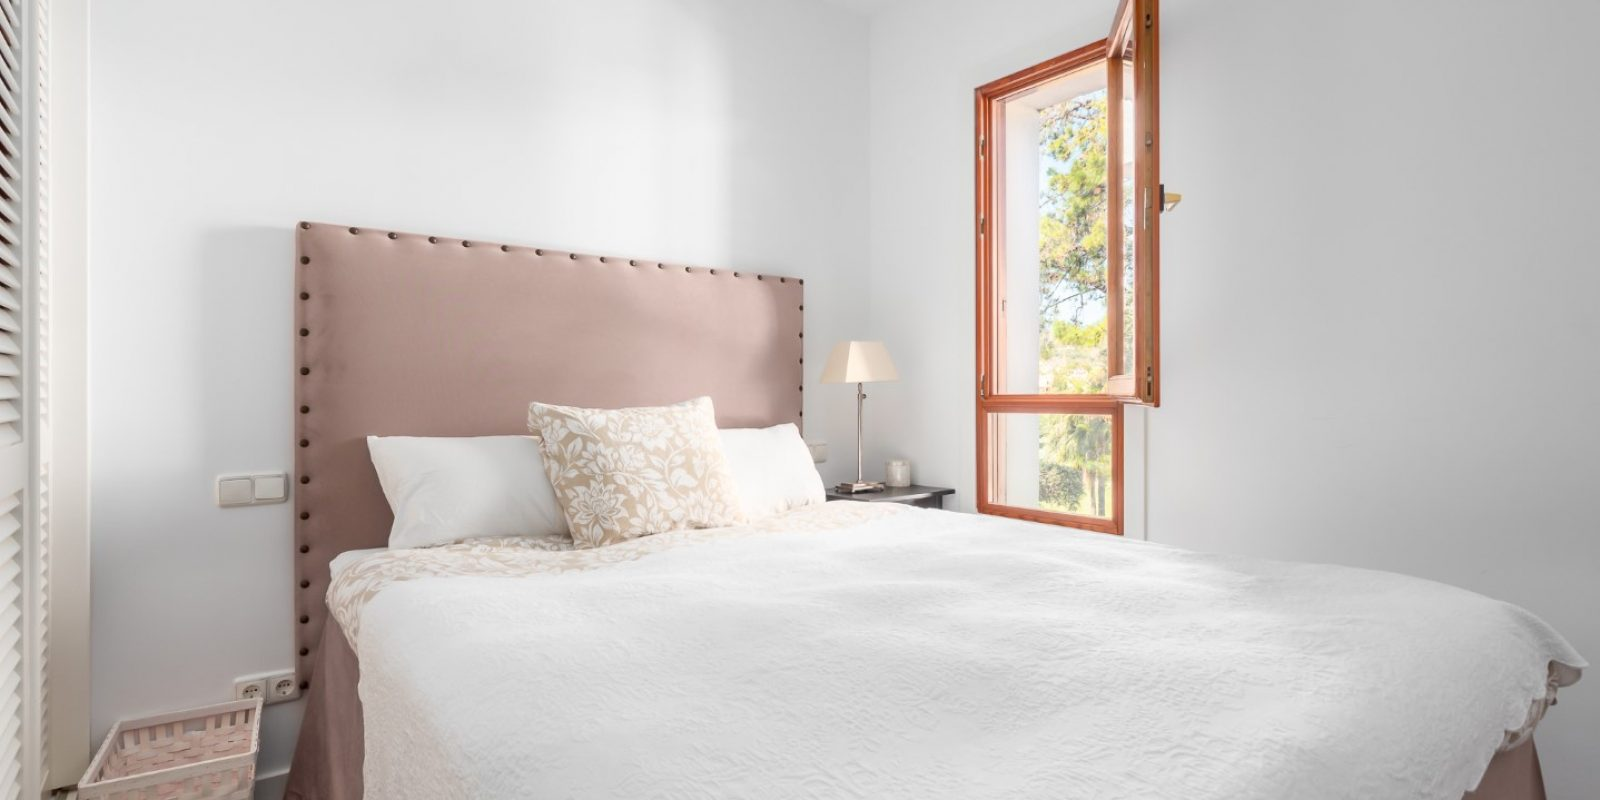 Alcores 532-NFH-07Bedroom-01 (Large)